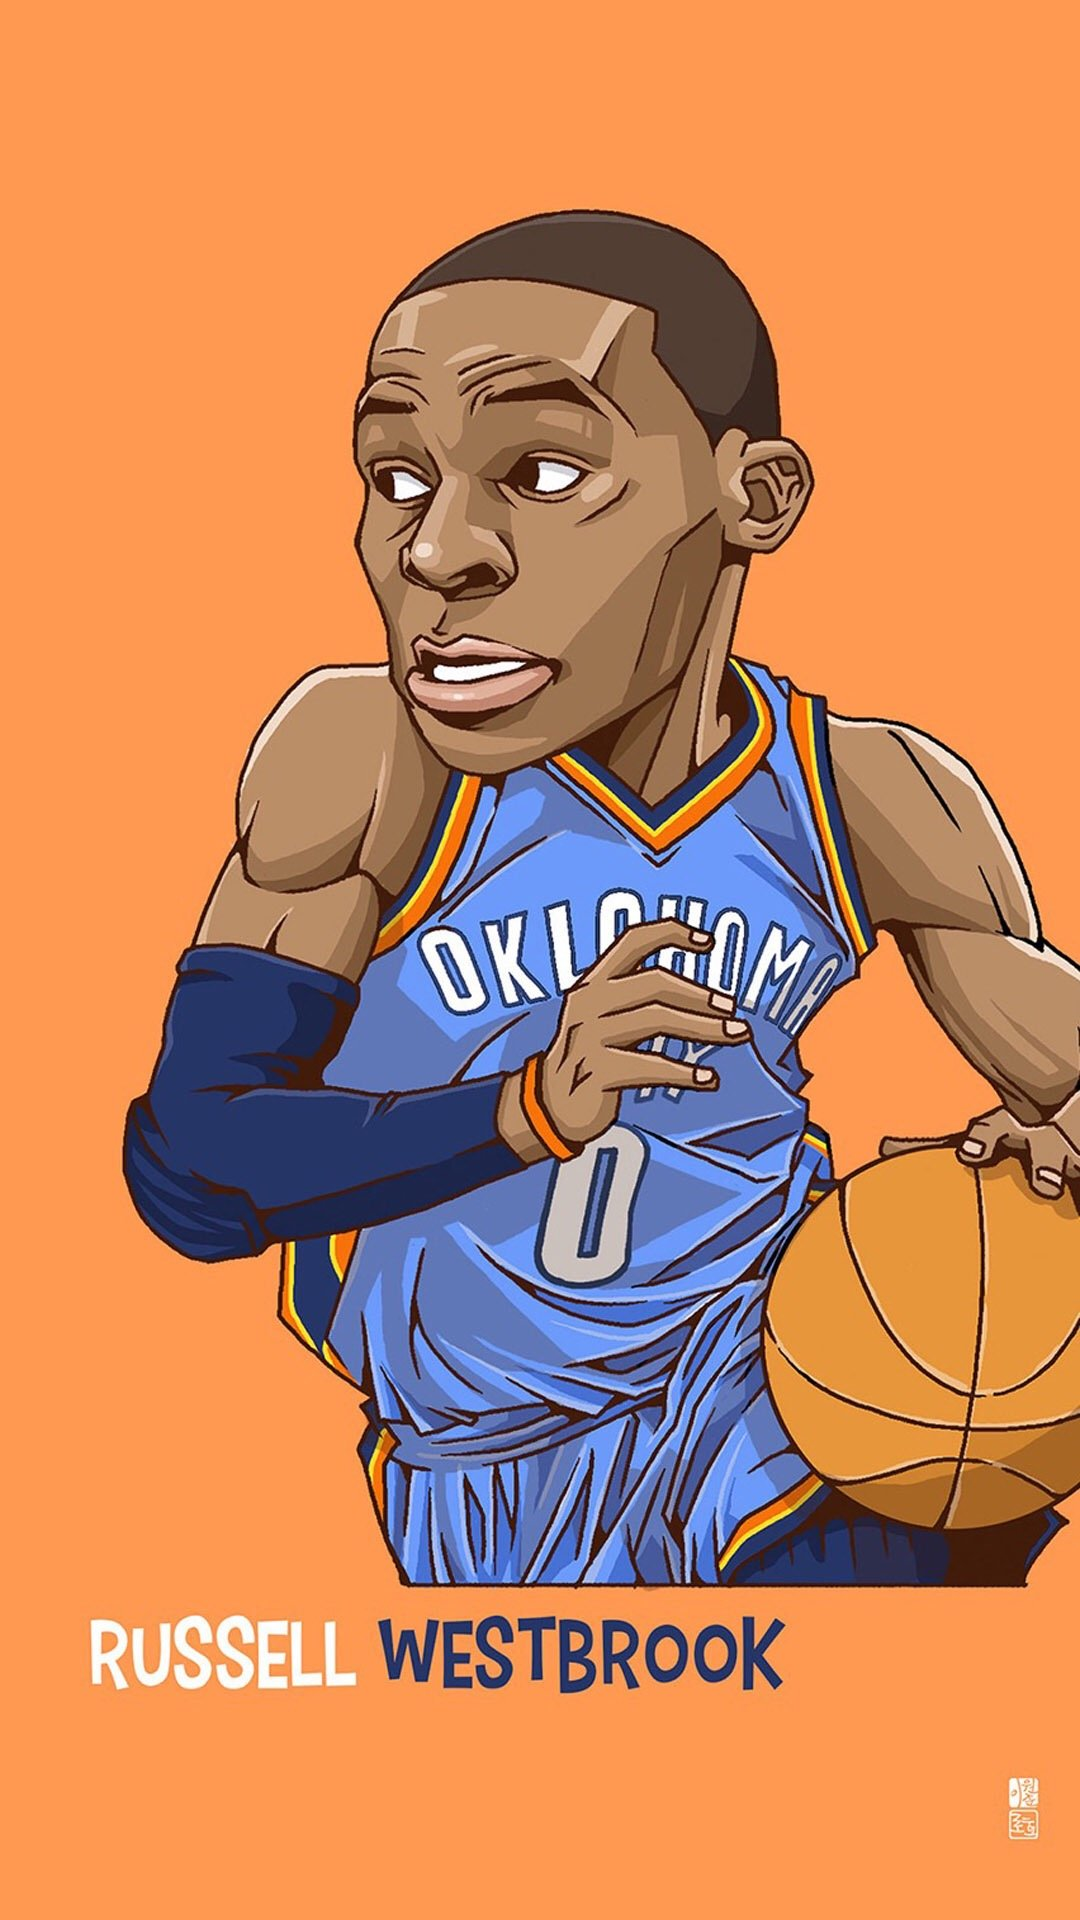 Tlcharger Russell Westbrook 1080 x 1920 Wallpapers 1080x1920